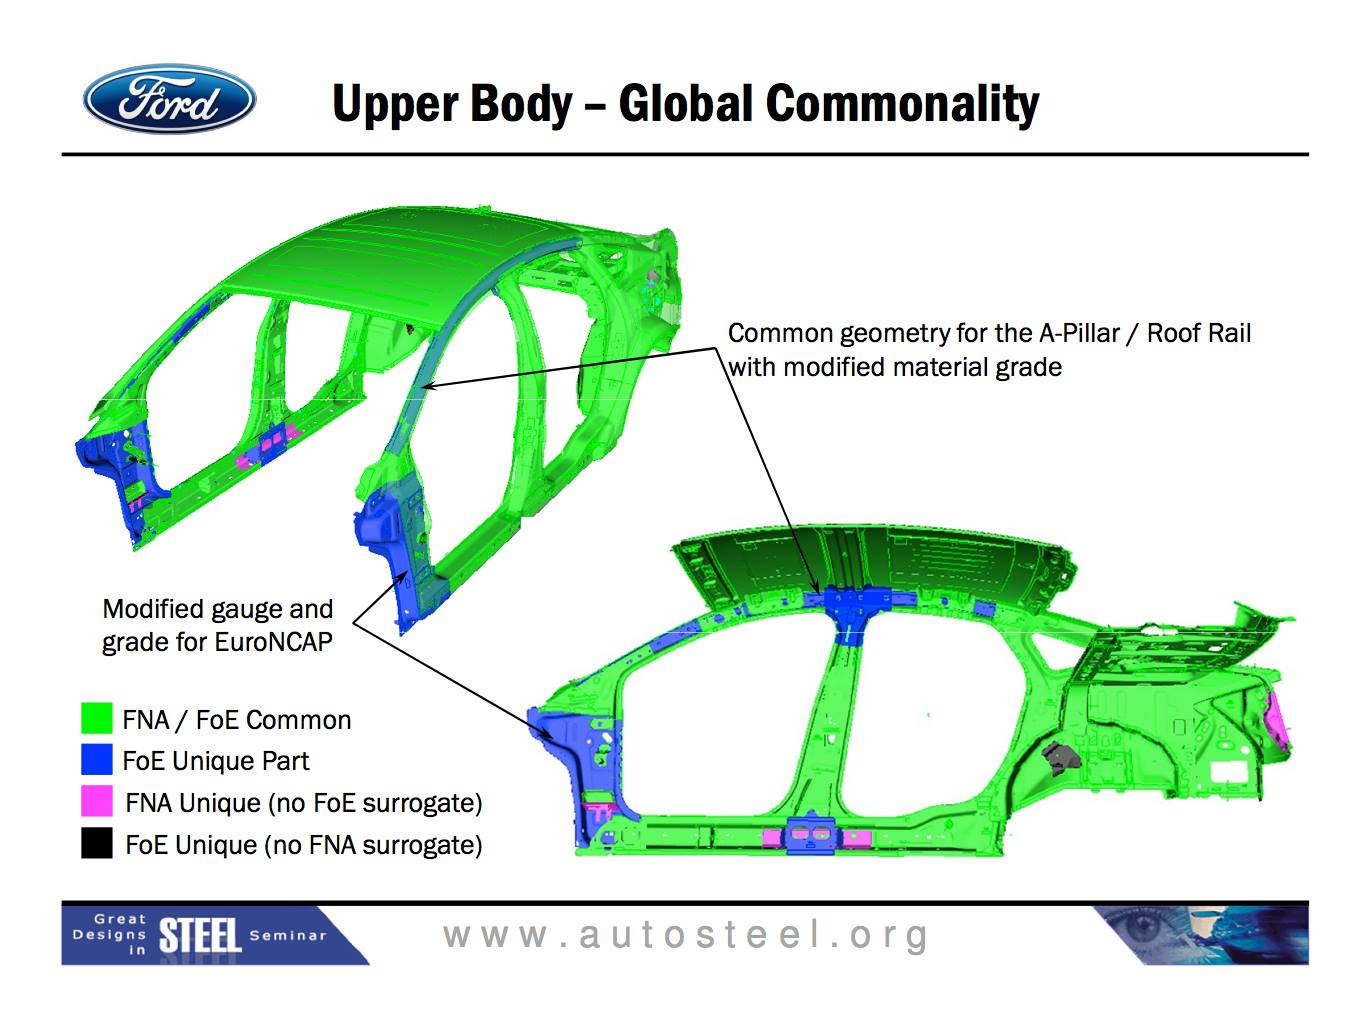 2014 Ford Fusion Body Structure Boron Extrication